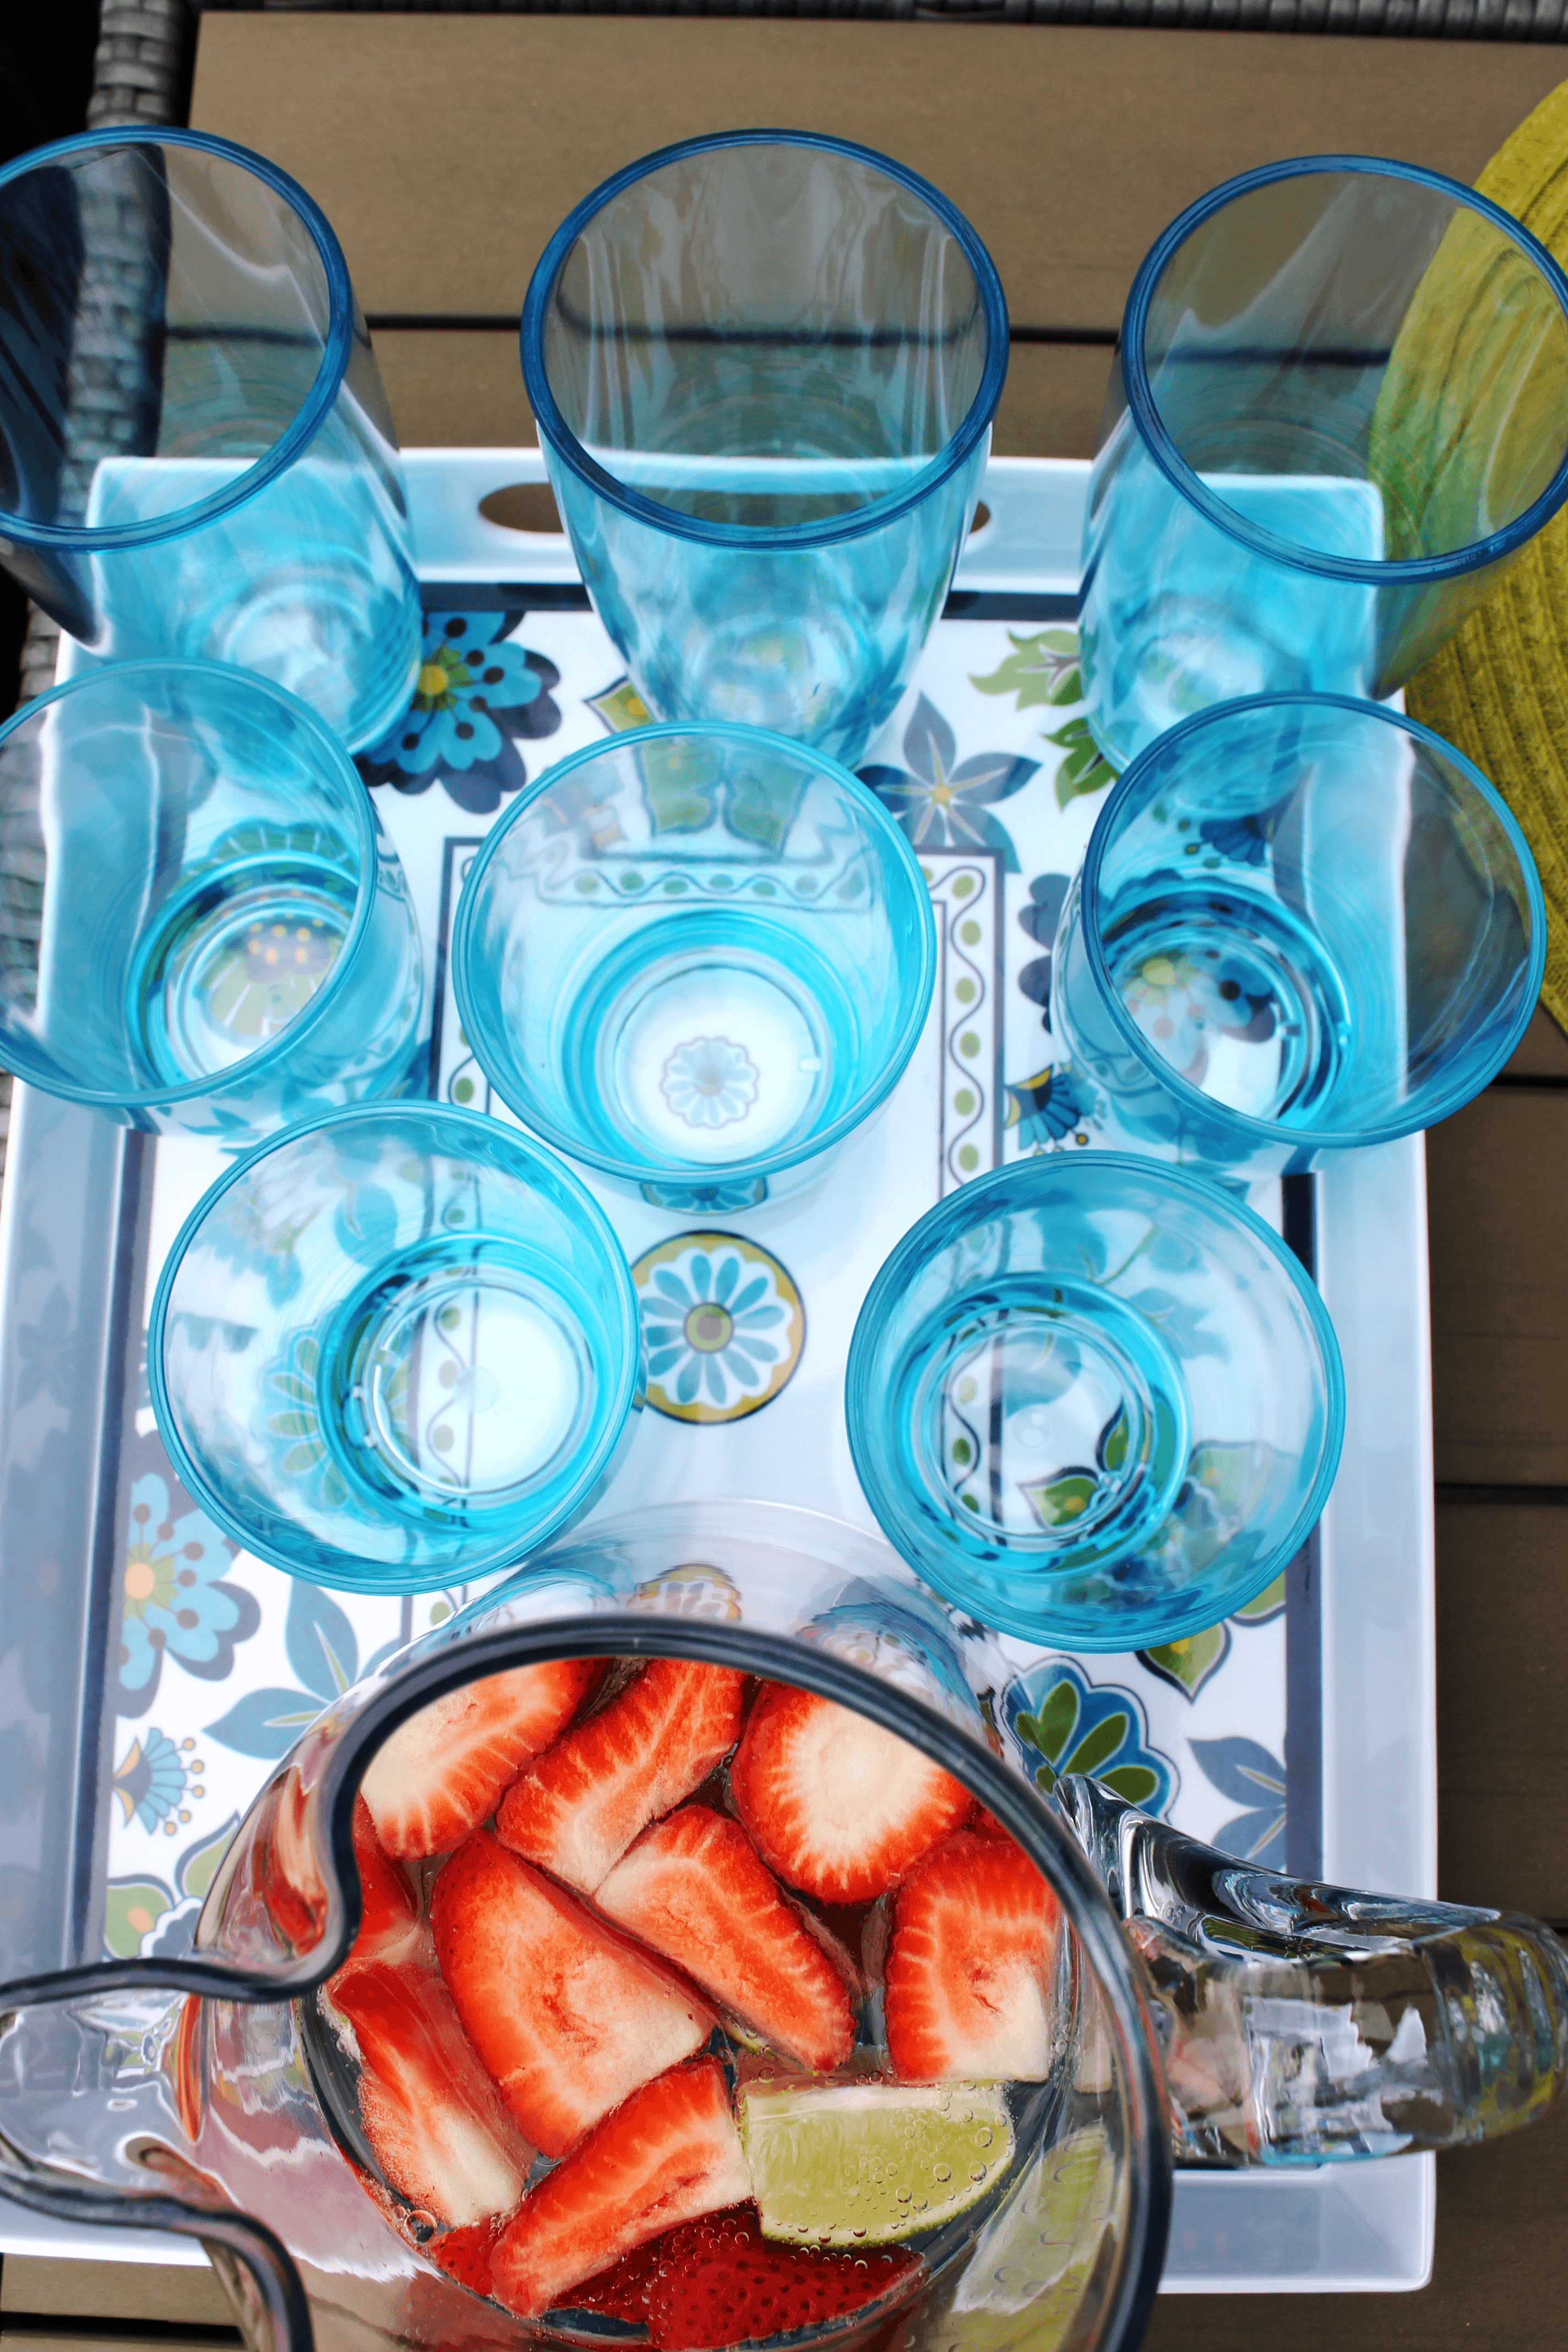 blue old fashioned glasses and highball glasses on a melamine tray